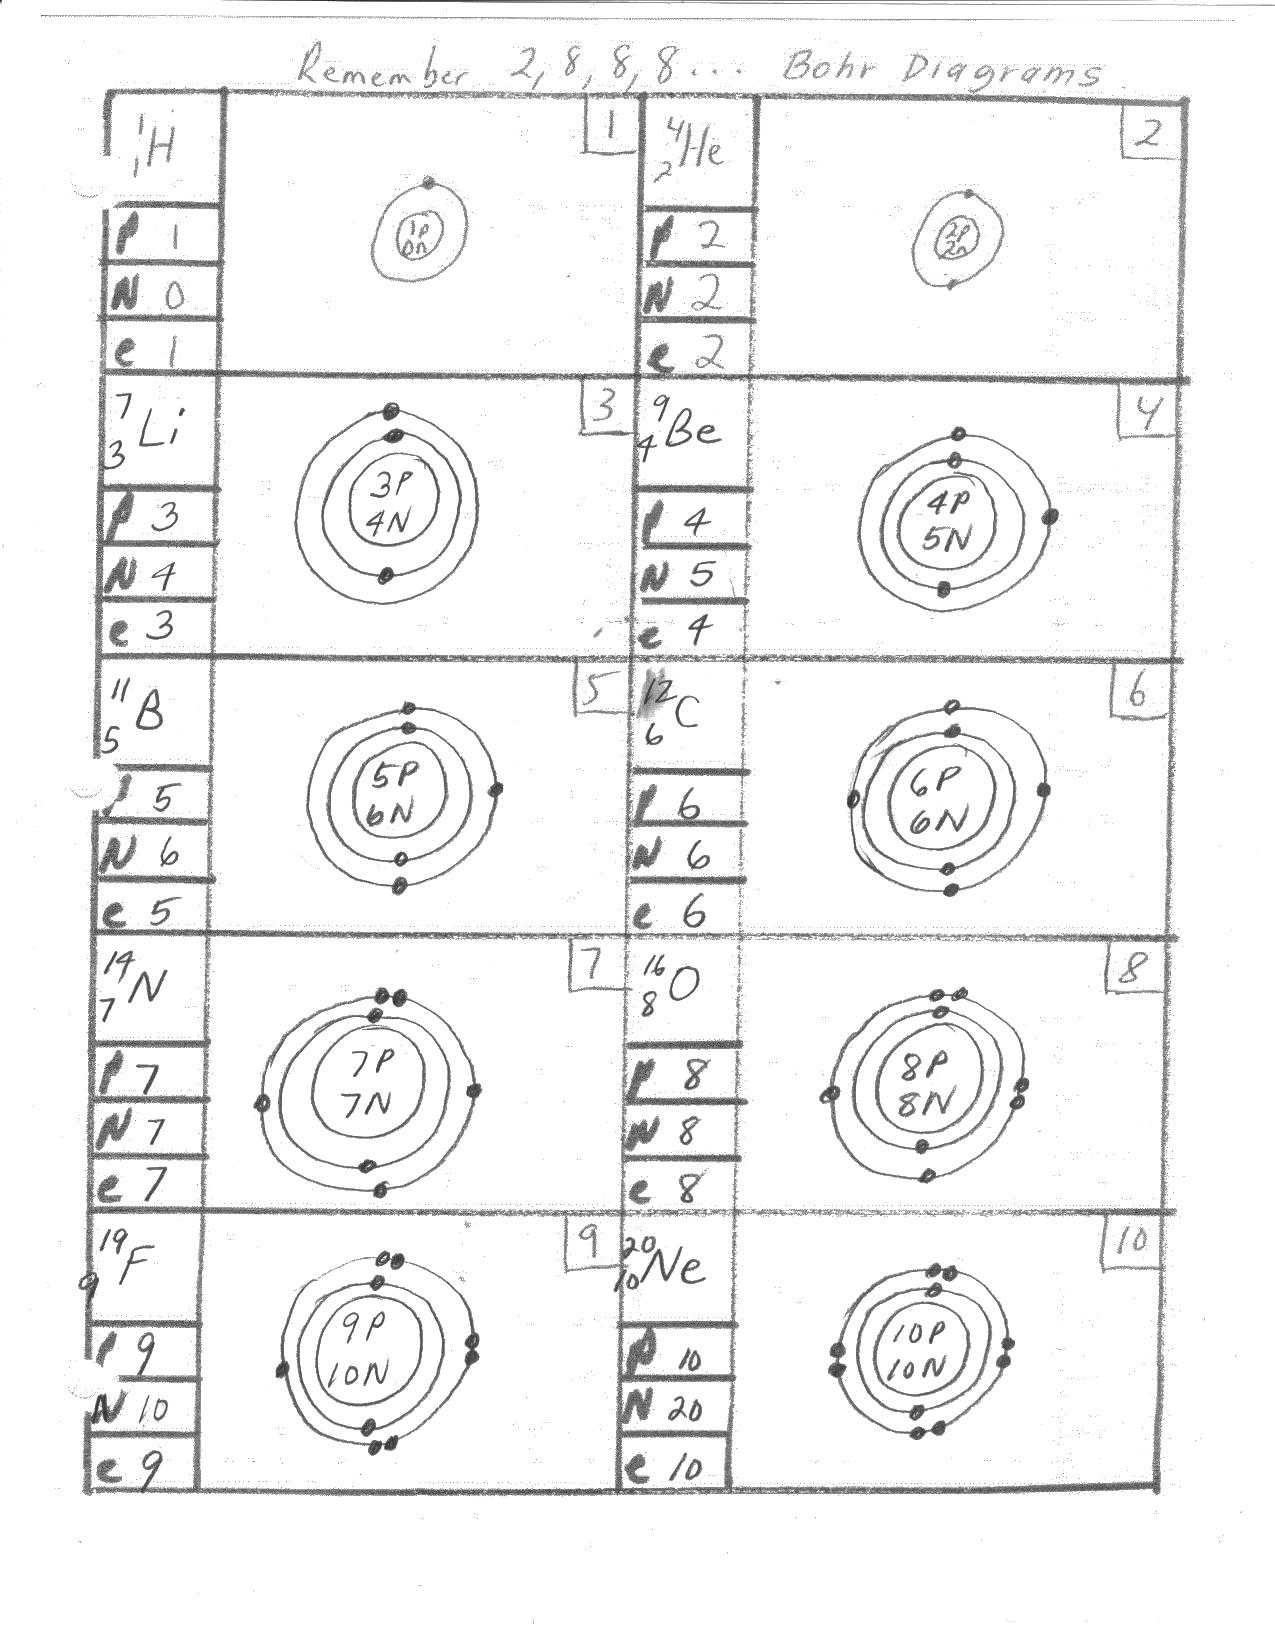 Bohr Model For Silicon Bohr Rutherford diagrams 1-10